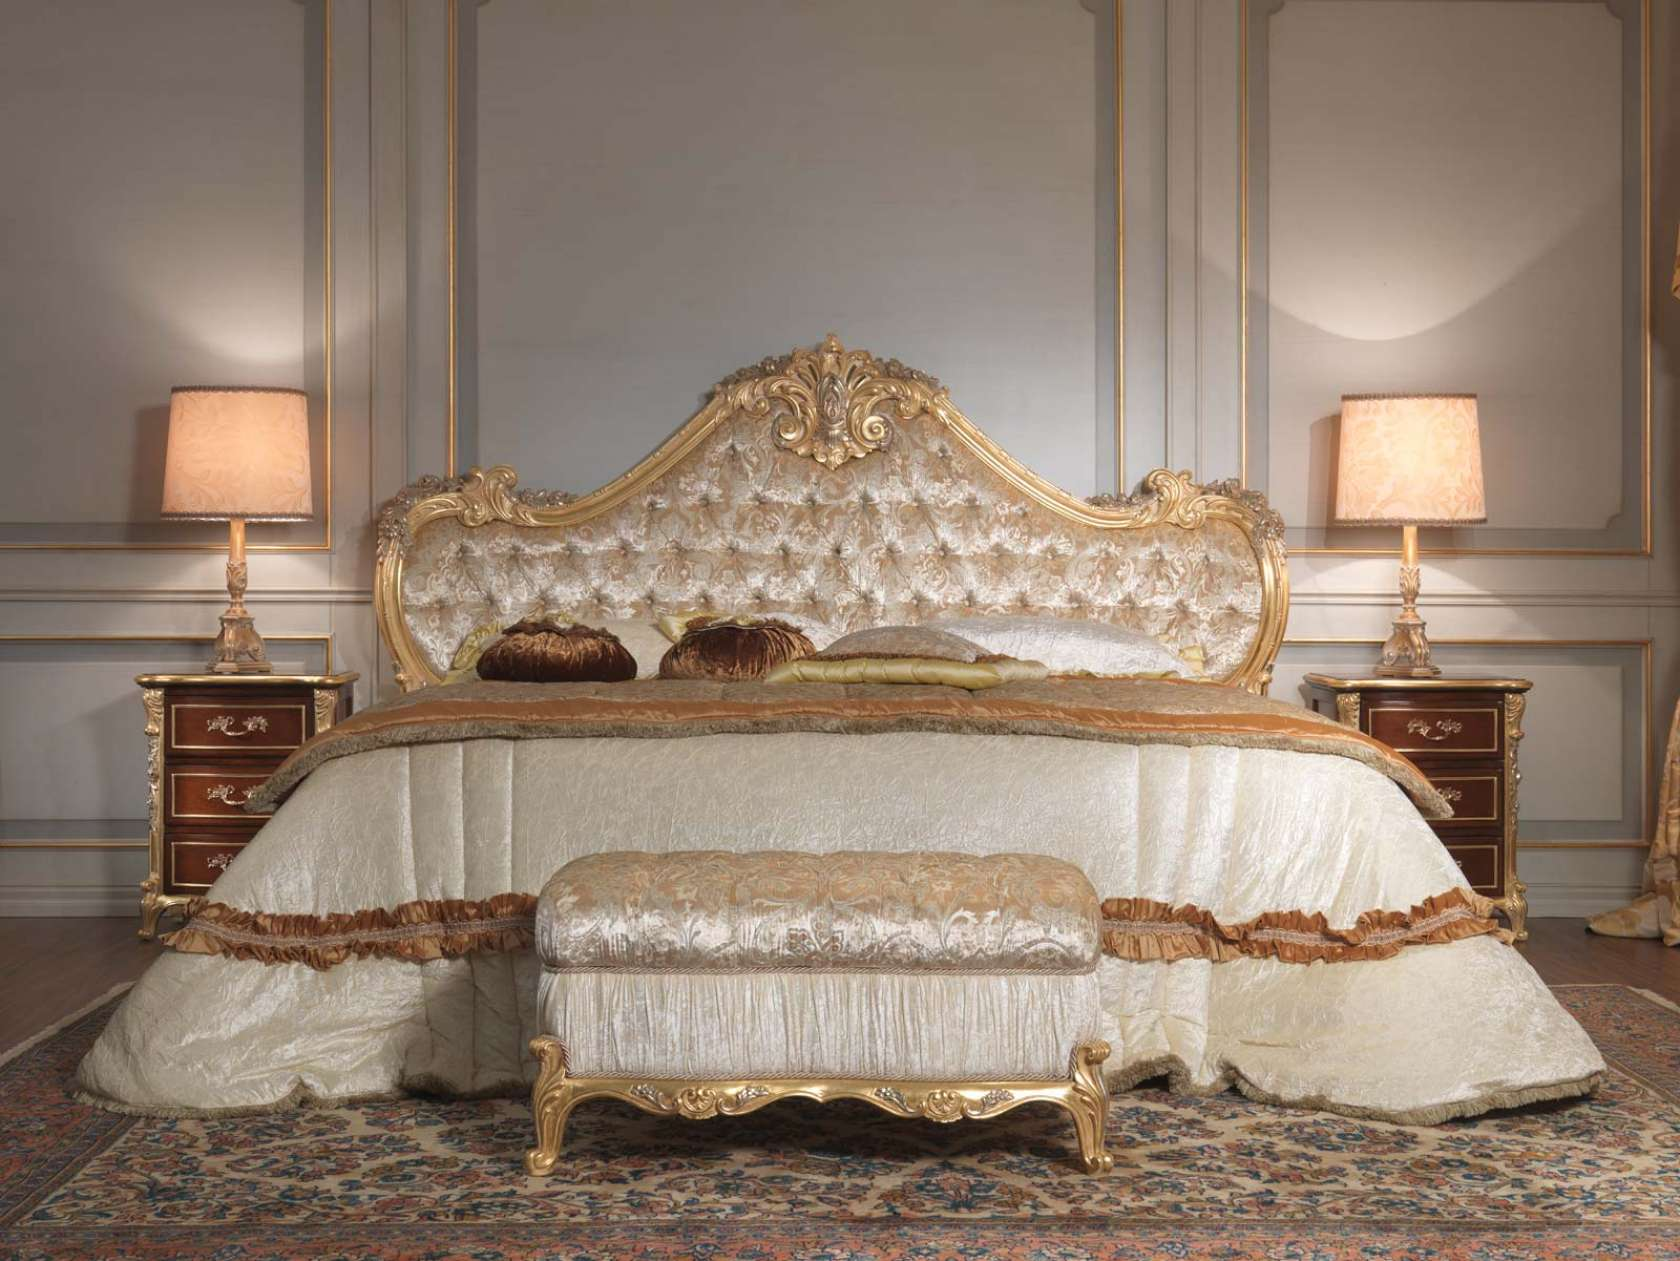 classic italian bedroom 18th century bed bench night. Black Bedroom Furniture Sets. Home Design Ideas